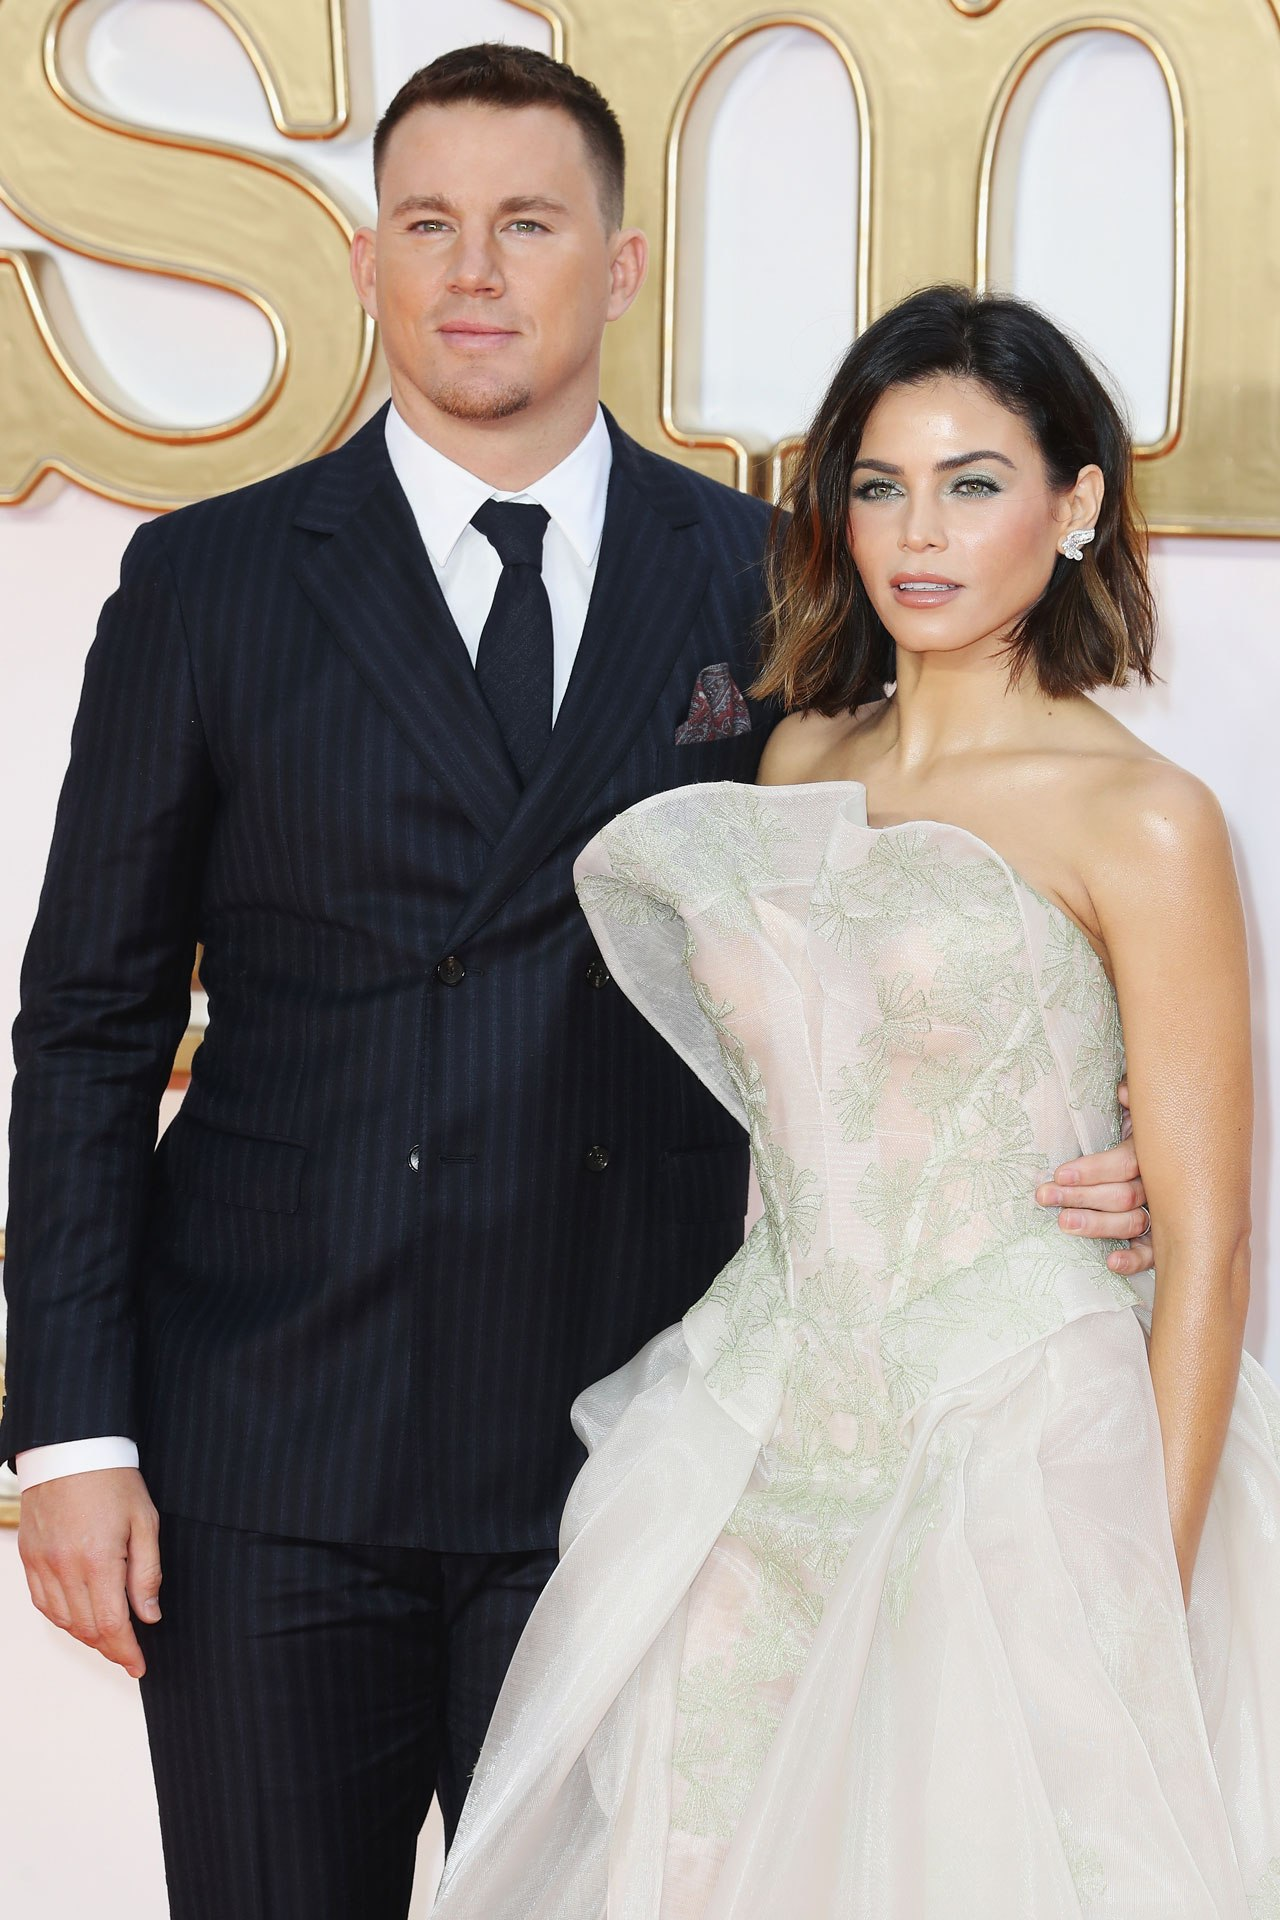 This is how Channing Tatum and Jenna Dewan are managing their lives as single parents